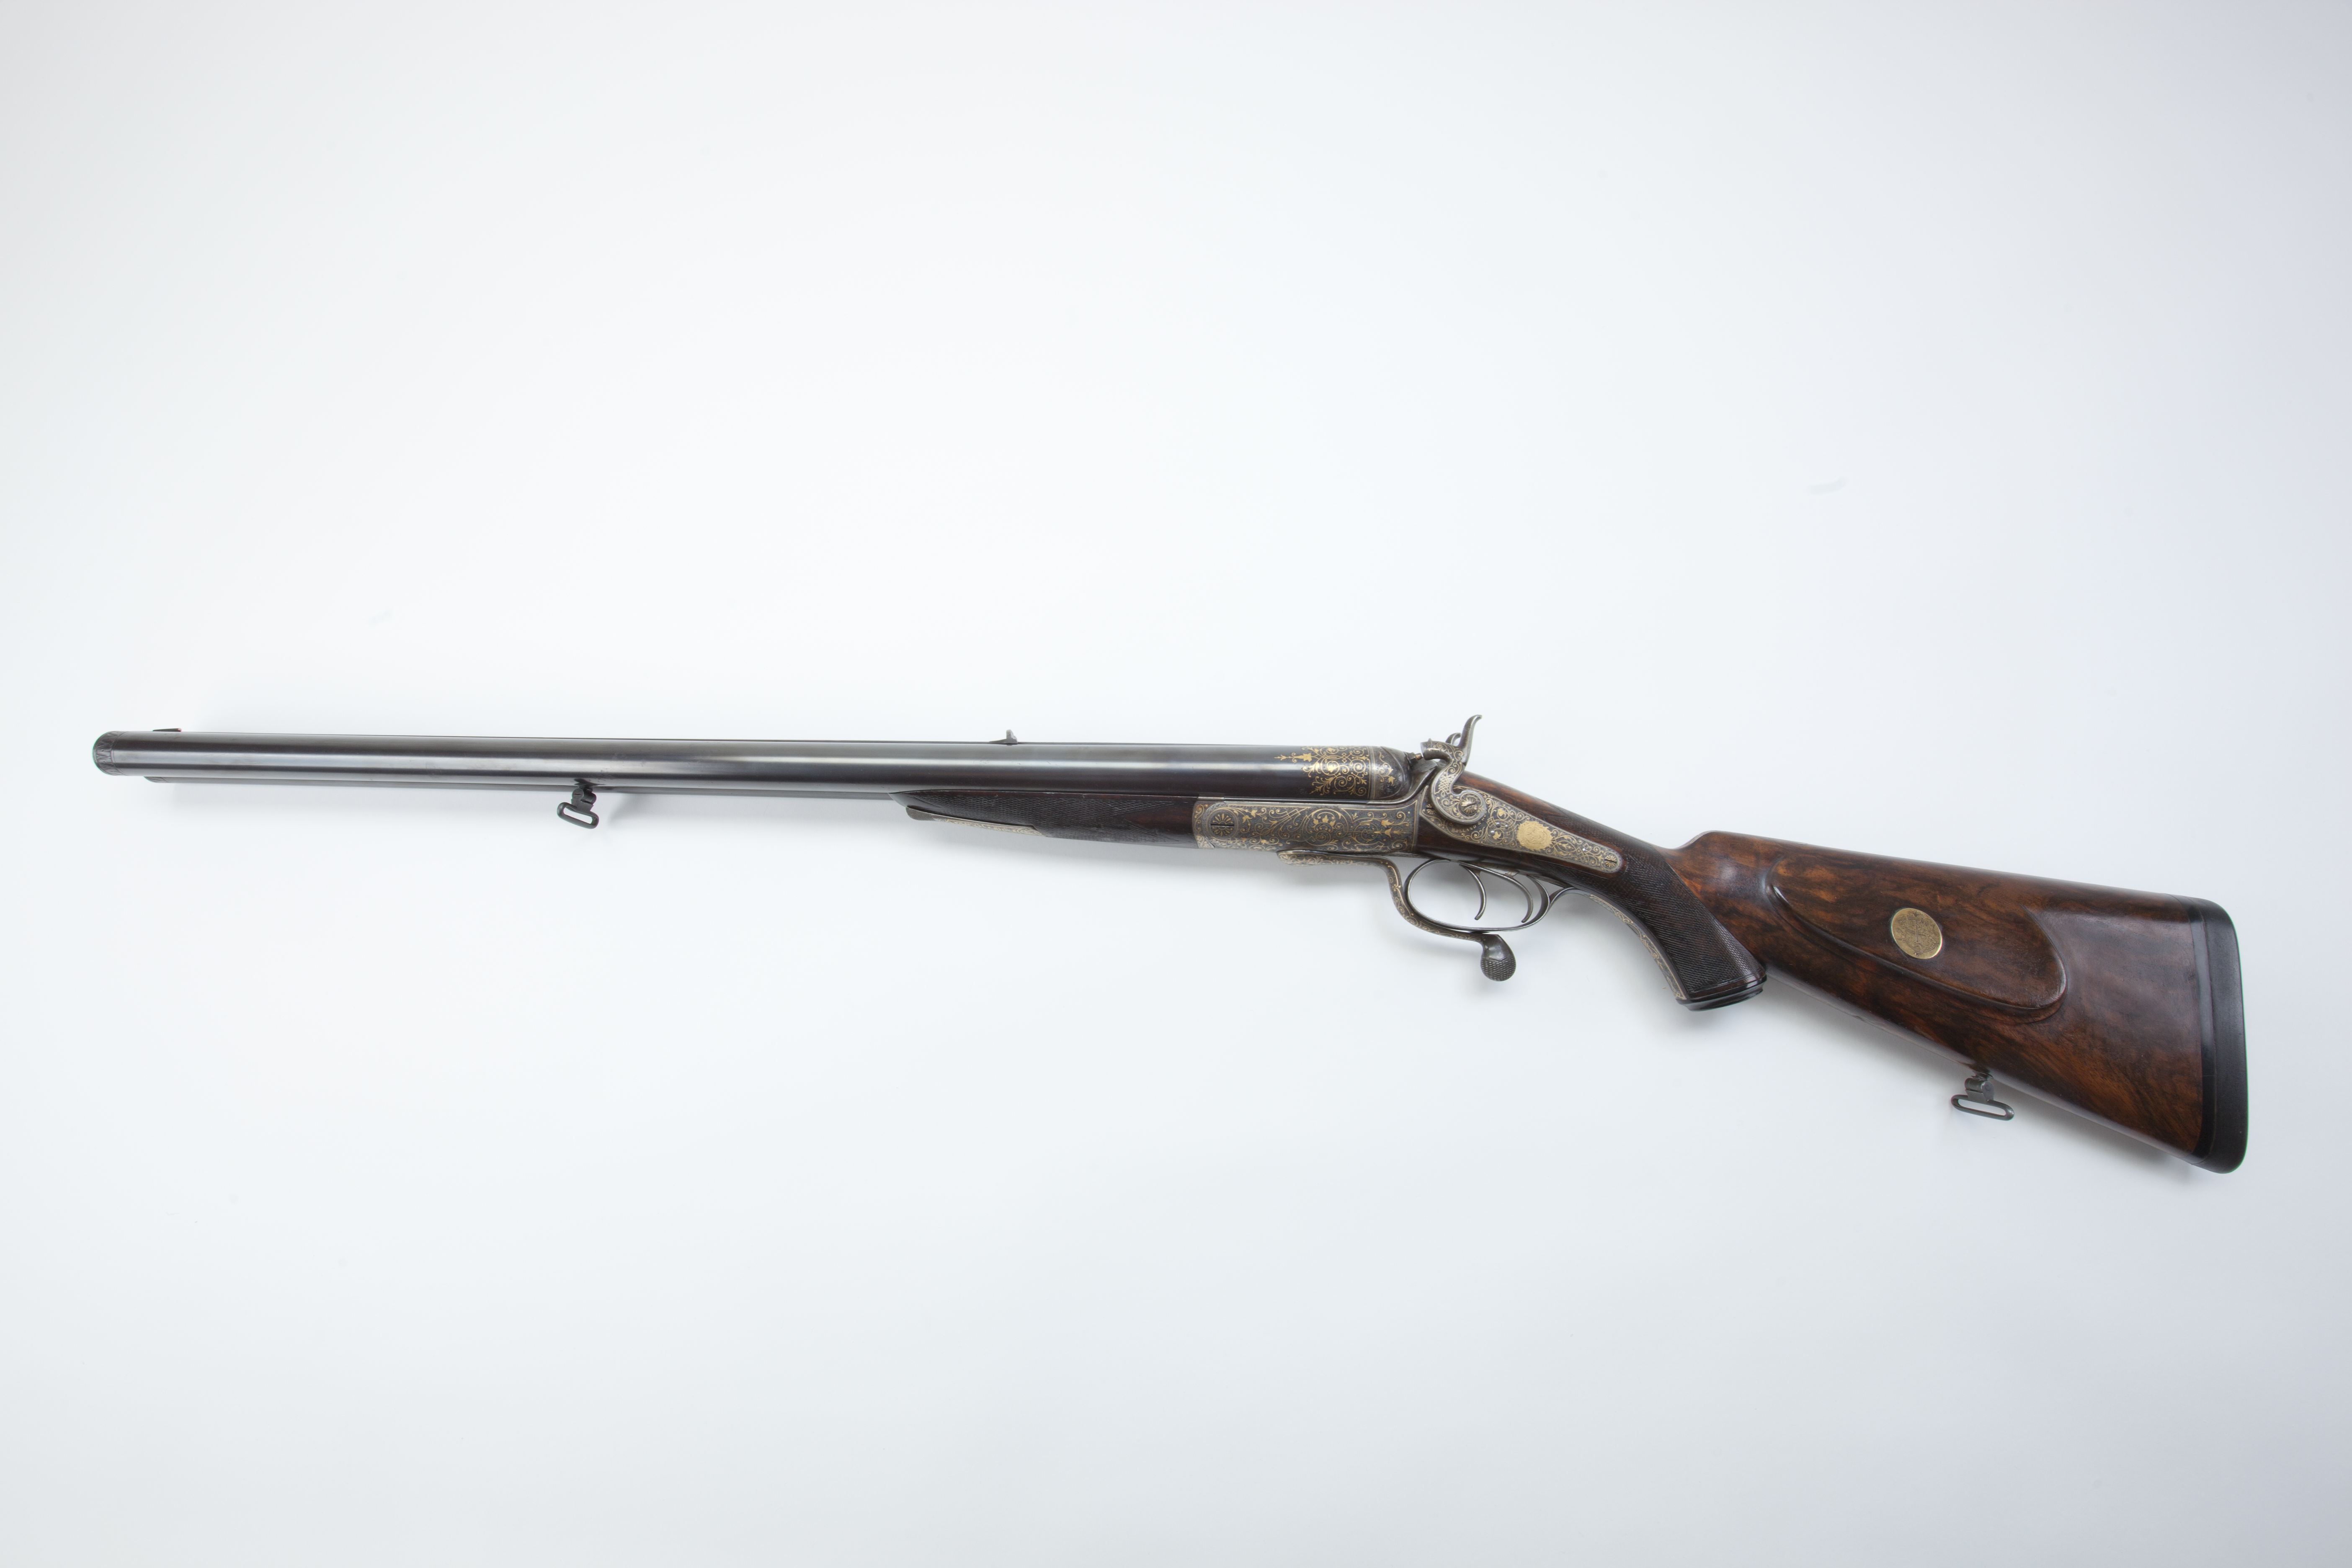 Holland & Holland Double Rifle - 13 bore